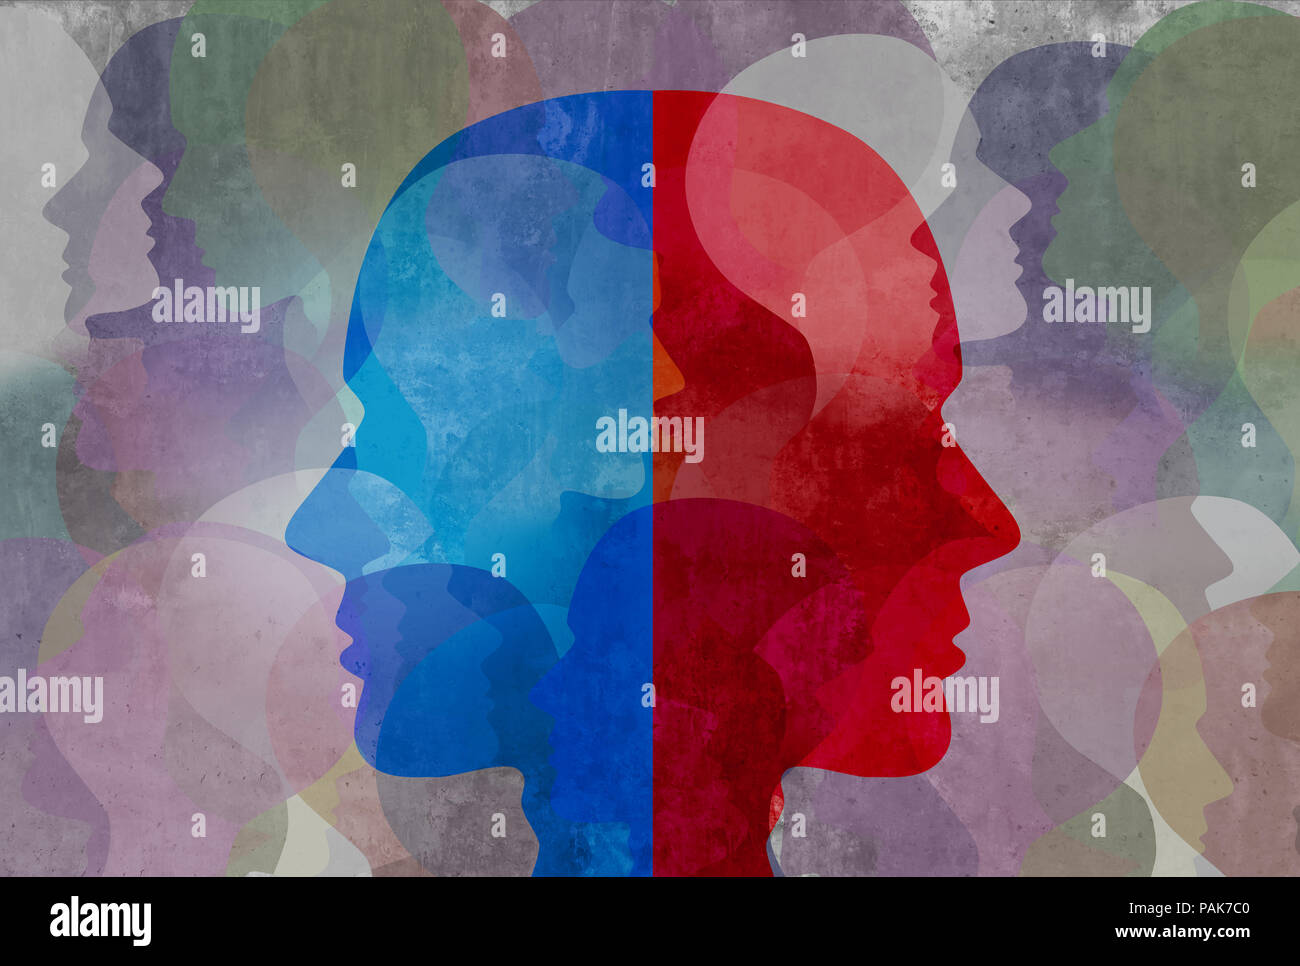 Schizophrenia and split personality disorder and mental health psychiatric disease concept in a 3d illustration style. - Stock Image